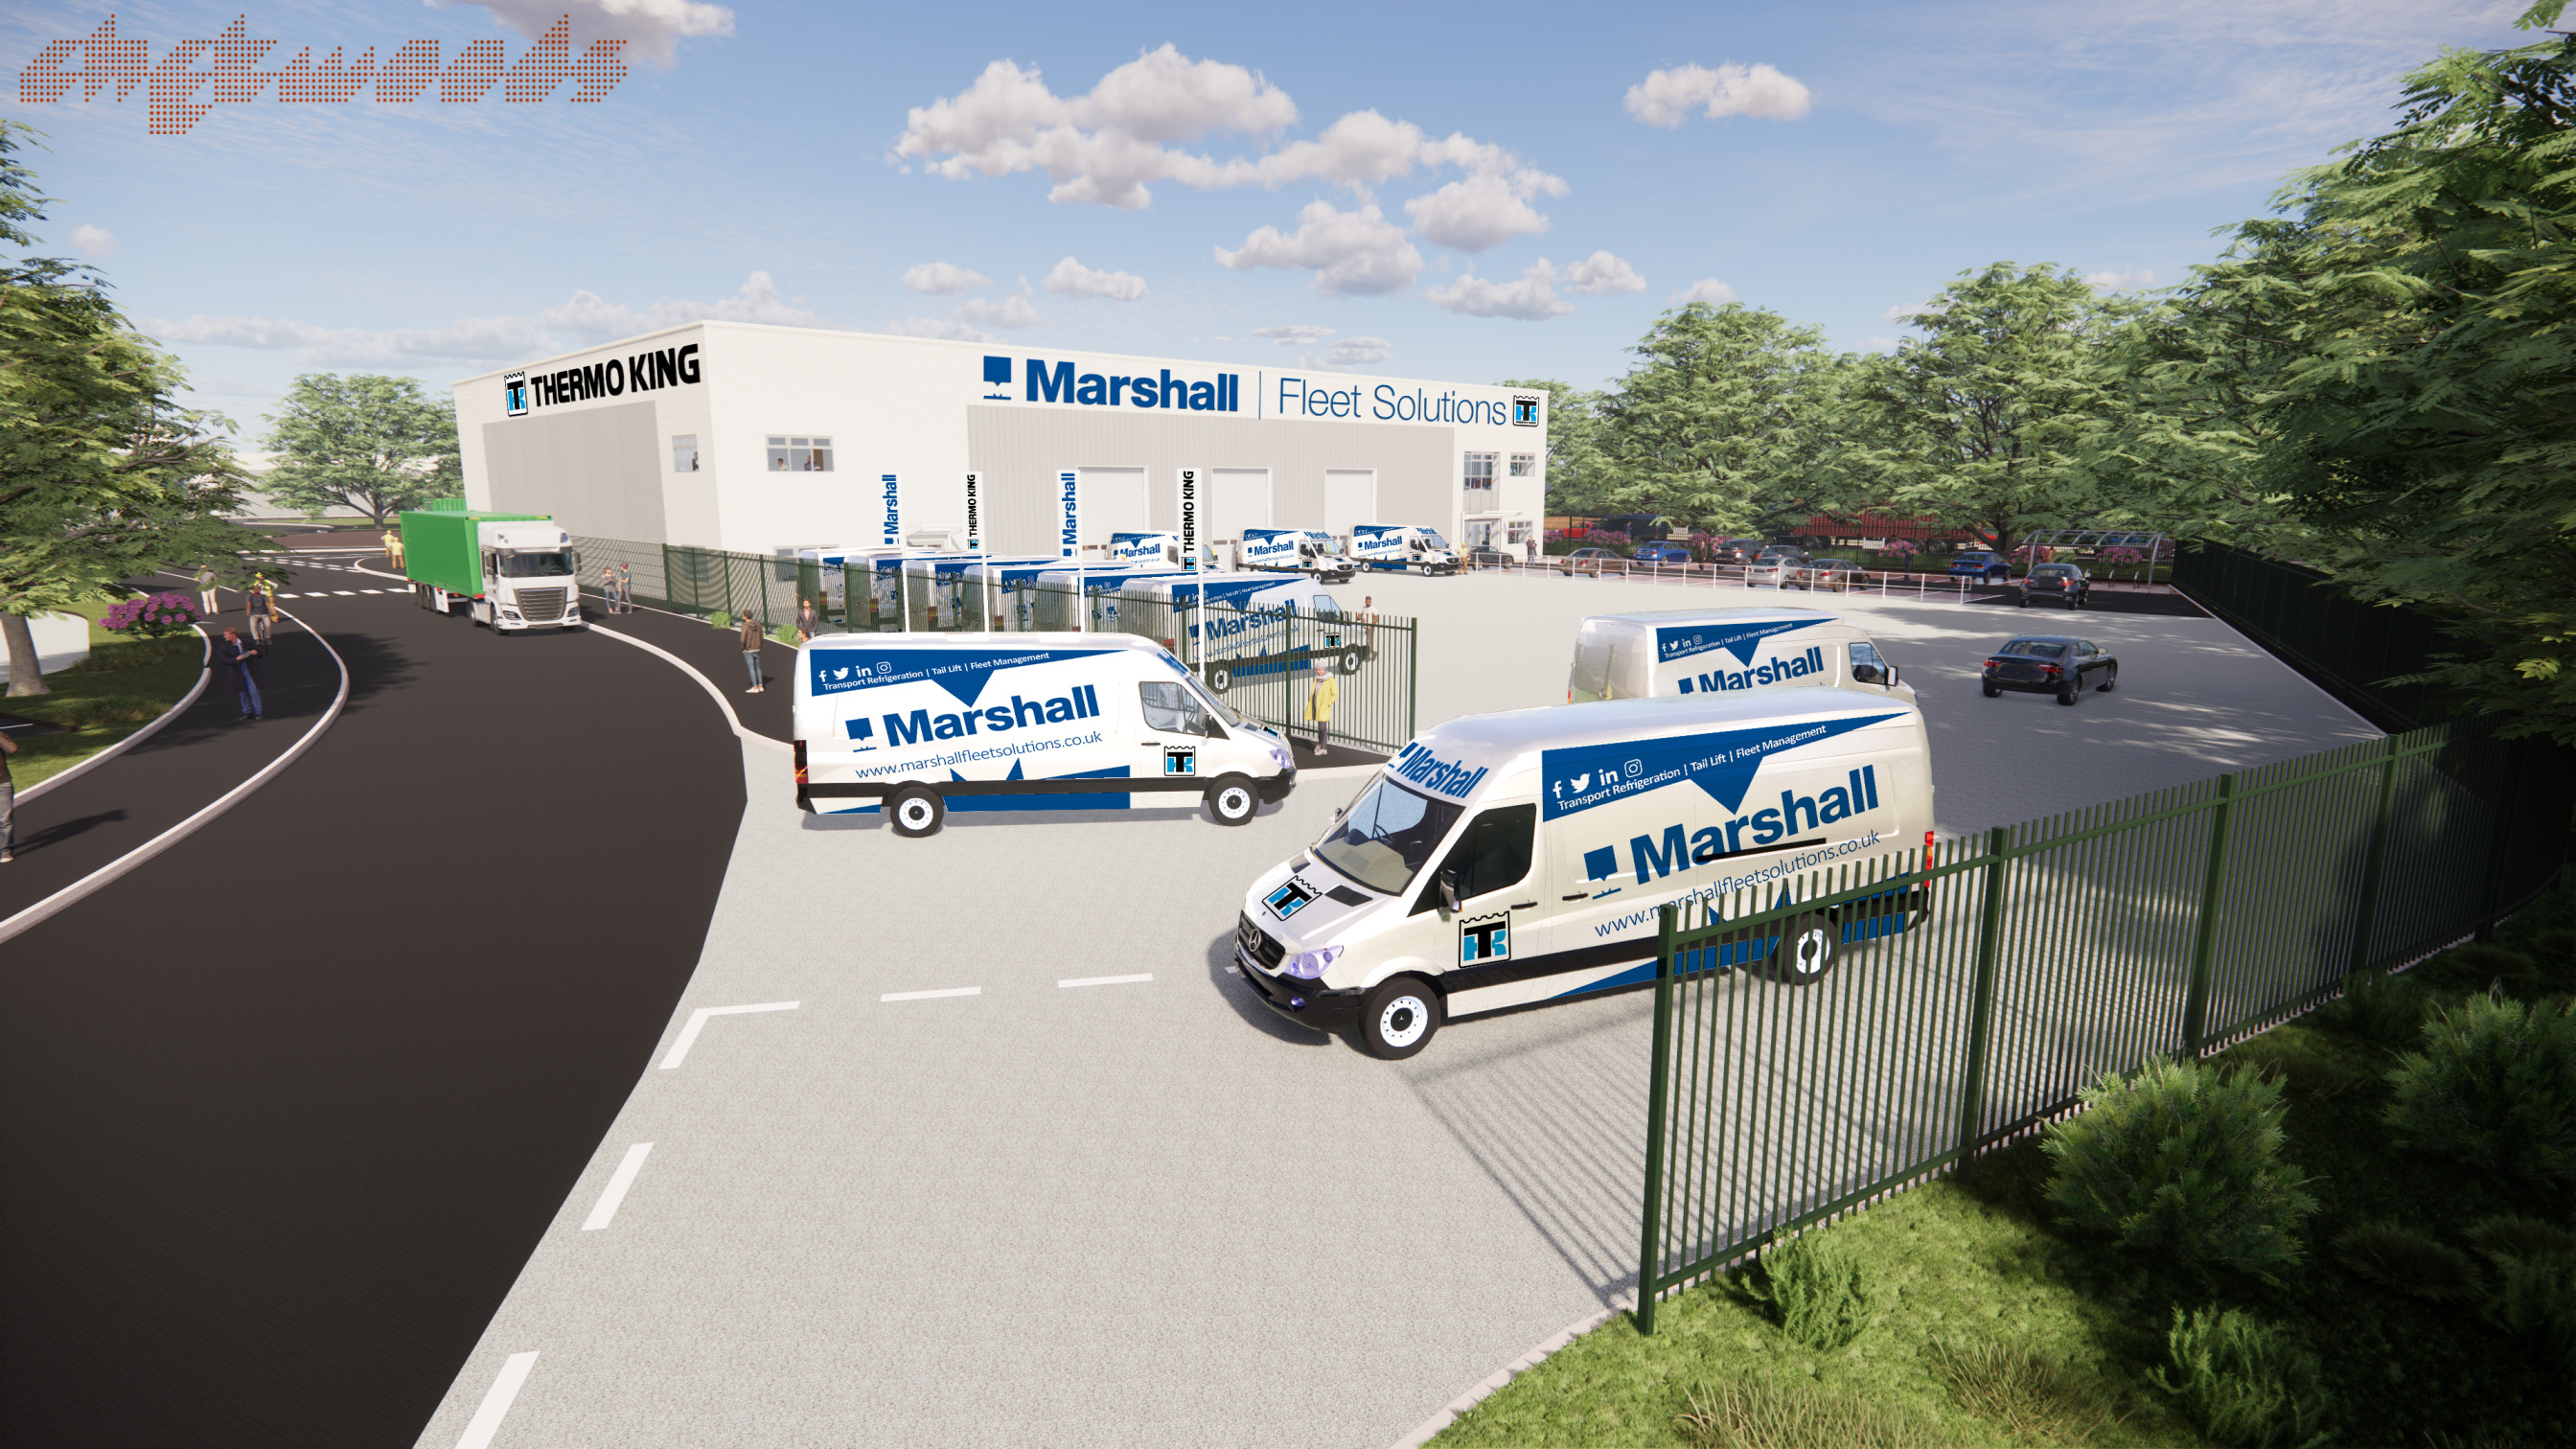 Marshall Fleet Solutions invests in brand new state-of-the-art Midlands Depot and another significant 24/7 service facility for Thermo King